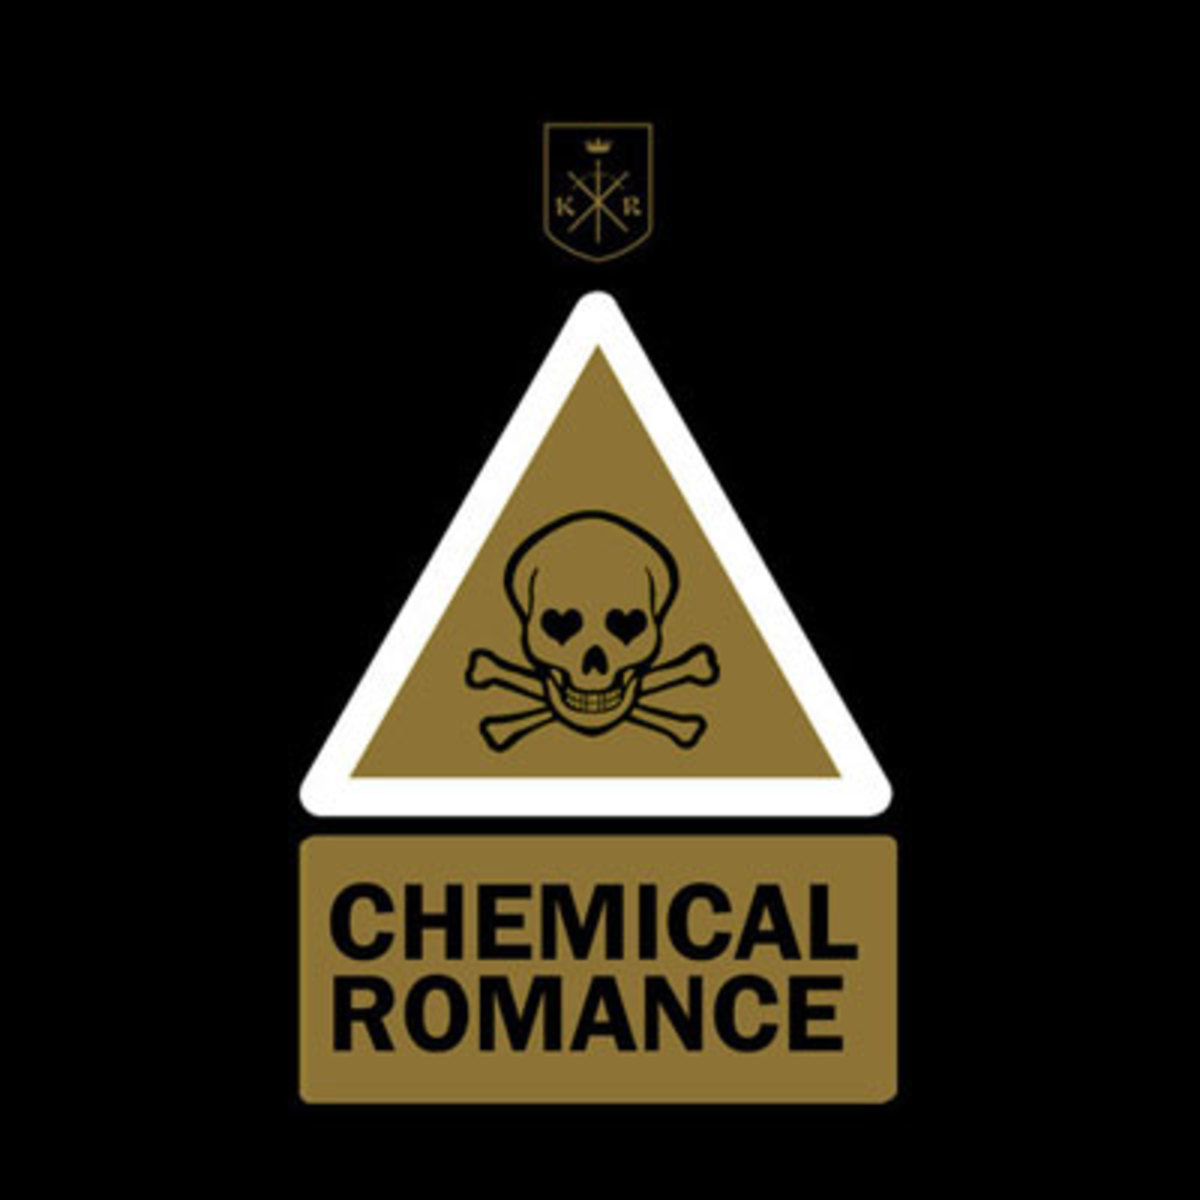 kingreign-chemromance.jpg